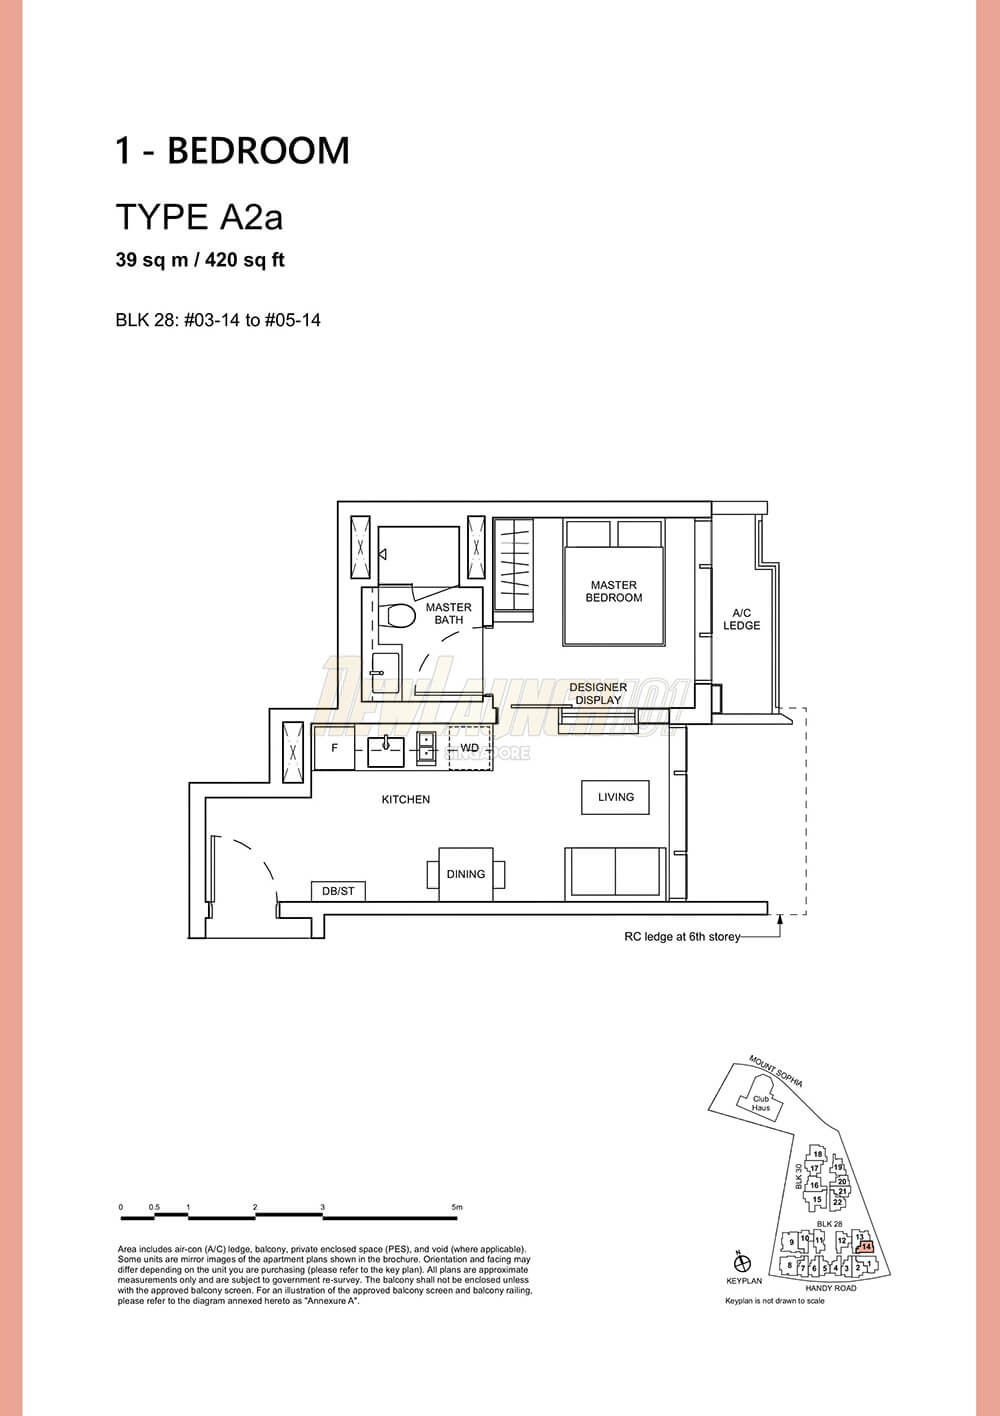 Haus on Handy Floor Plan 1-Bedroom Type A2a